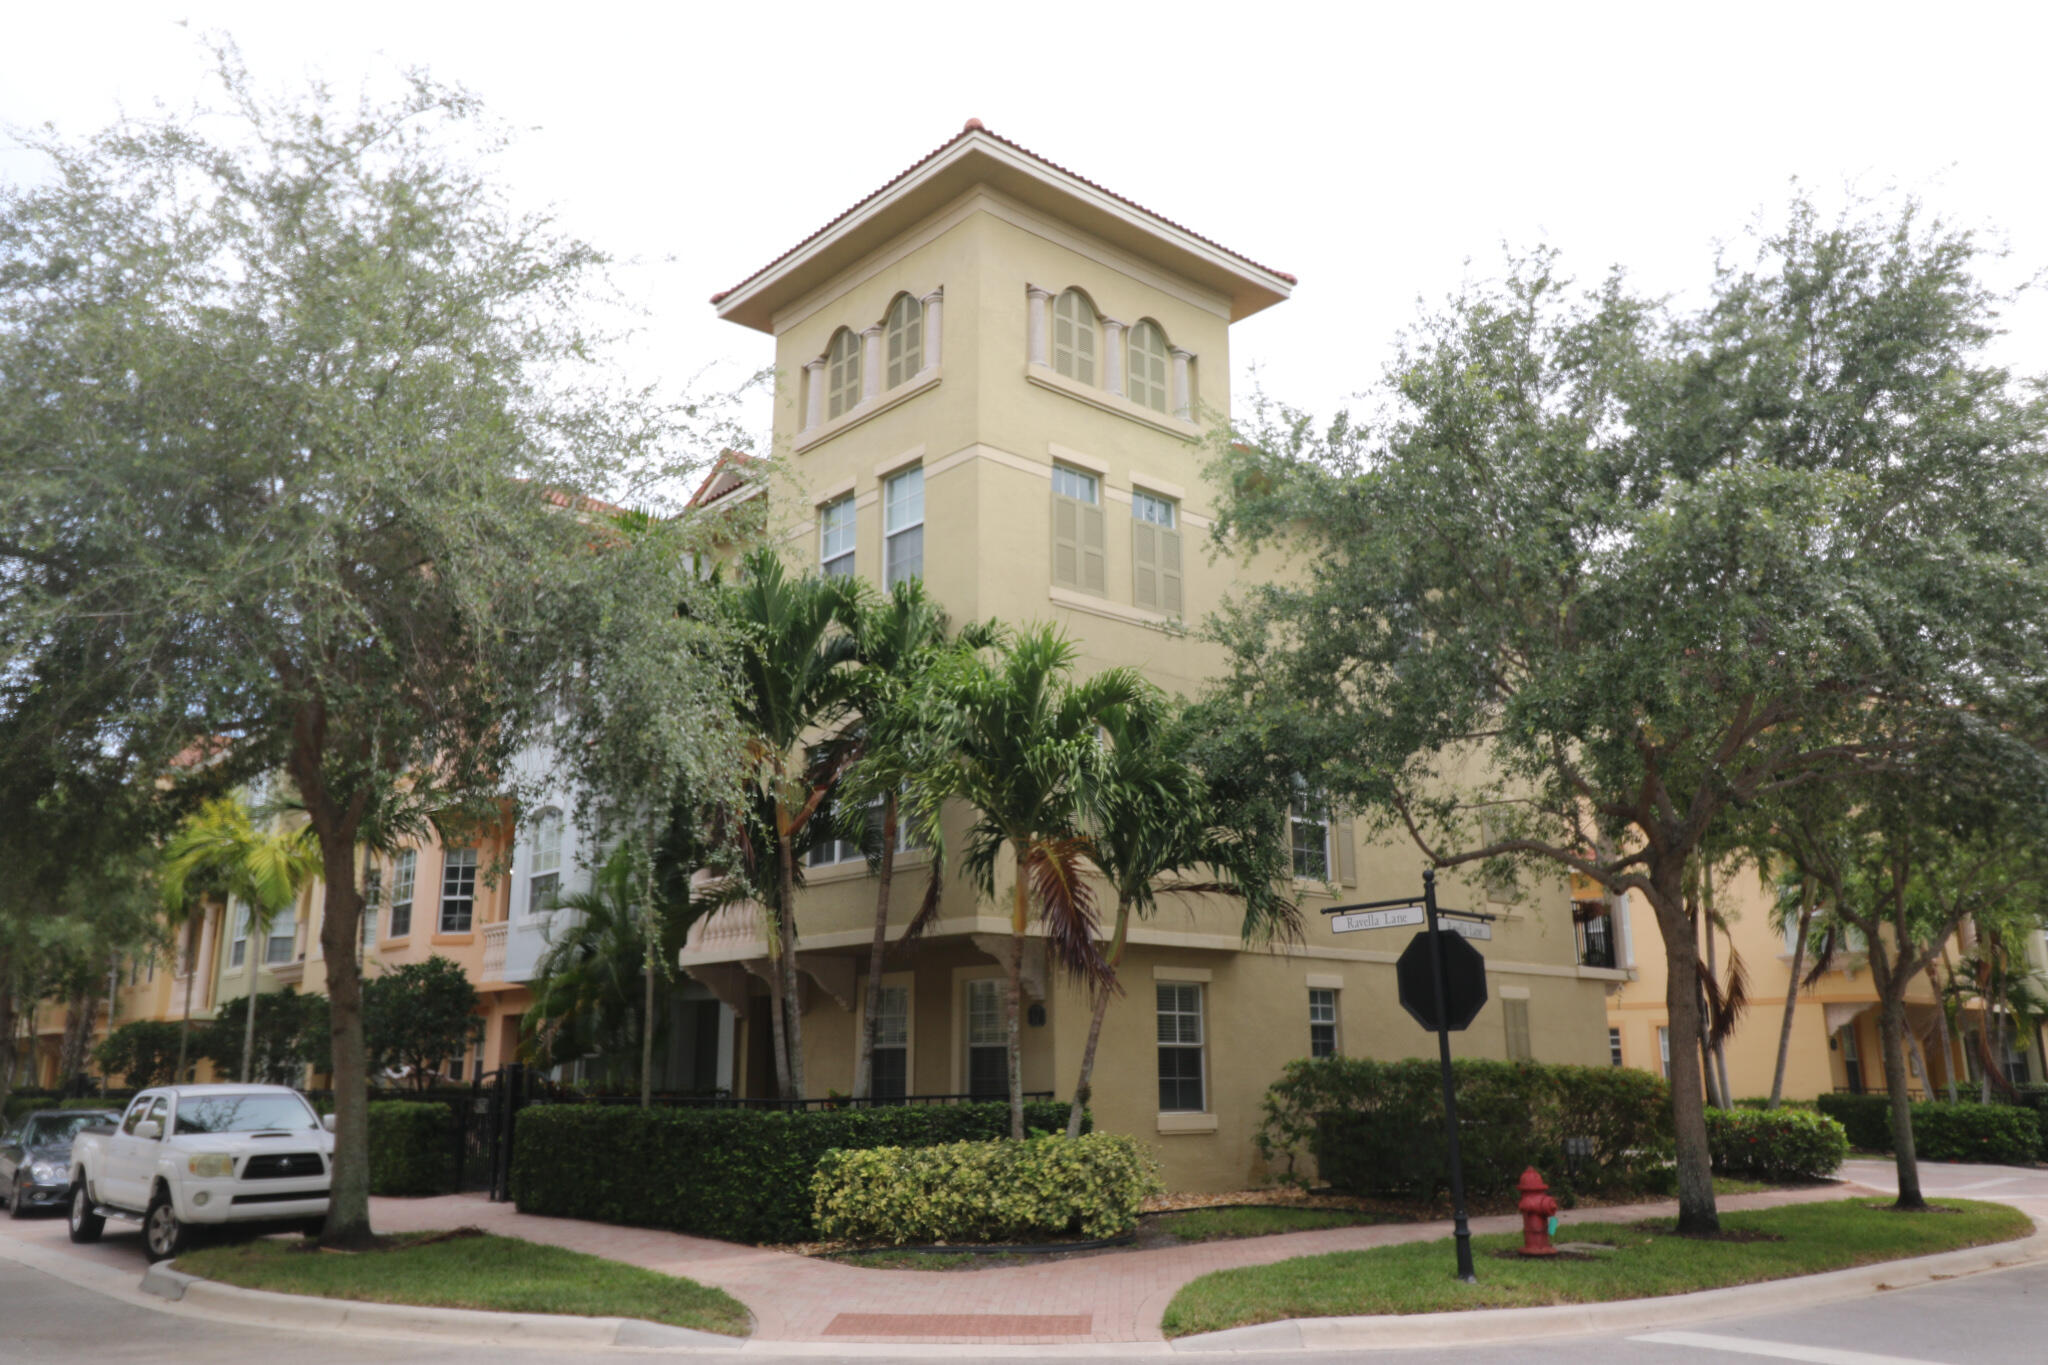 Beautiful, spacious 3 story townhouse in the heart of Palm Beach Gardens. As close as it gets to shopping, restaurants, and all that South Florida has to offer, while still only a 5-10 minute drive to beach. This townhouse is a corner-unit, with eastern exposure, allowing great natural light to exist throughout the home. Two balconies facing east and west.  Master suite situated upstairs, with extra large closet and double vanity bathroom. Large walk-in shower, with a large Roman bathtub. Harbour Oaks community offers a gated, private entrance and a clubhouse complete with a fitness room, gym, jacuzzi, and community room.